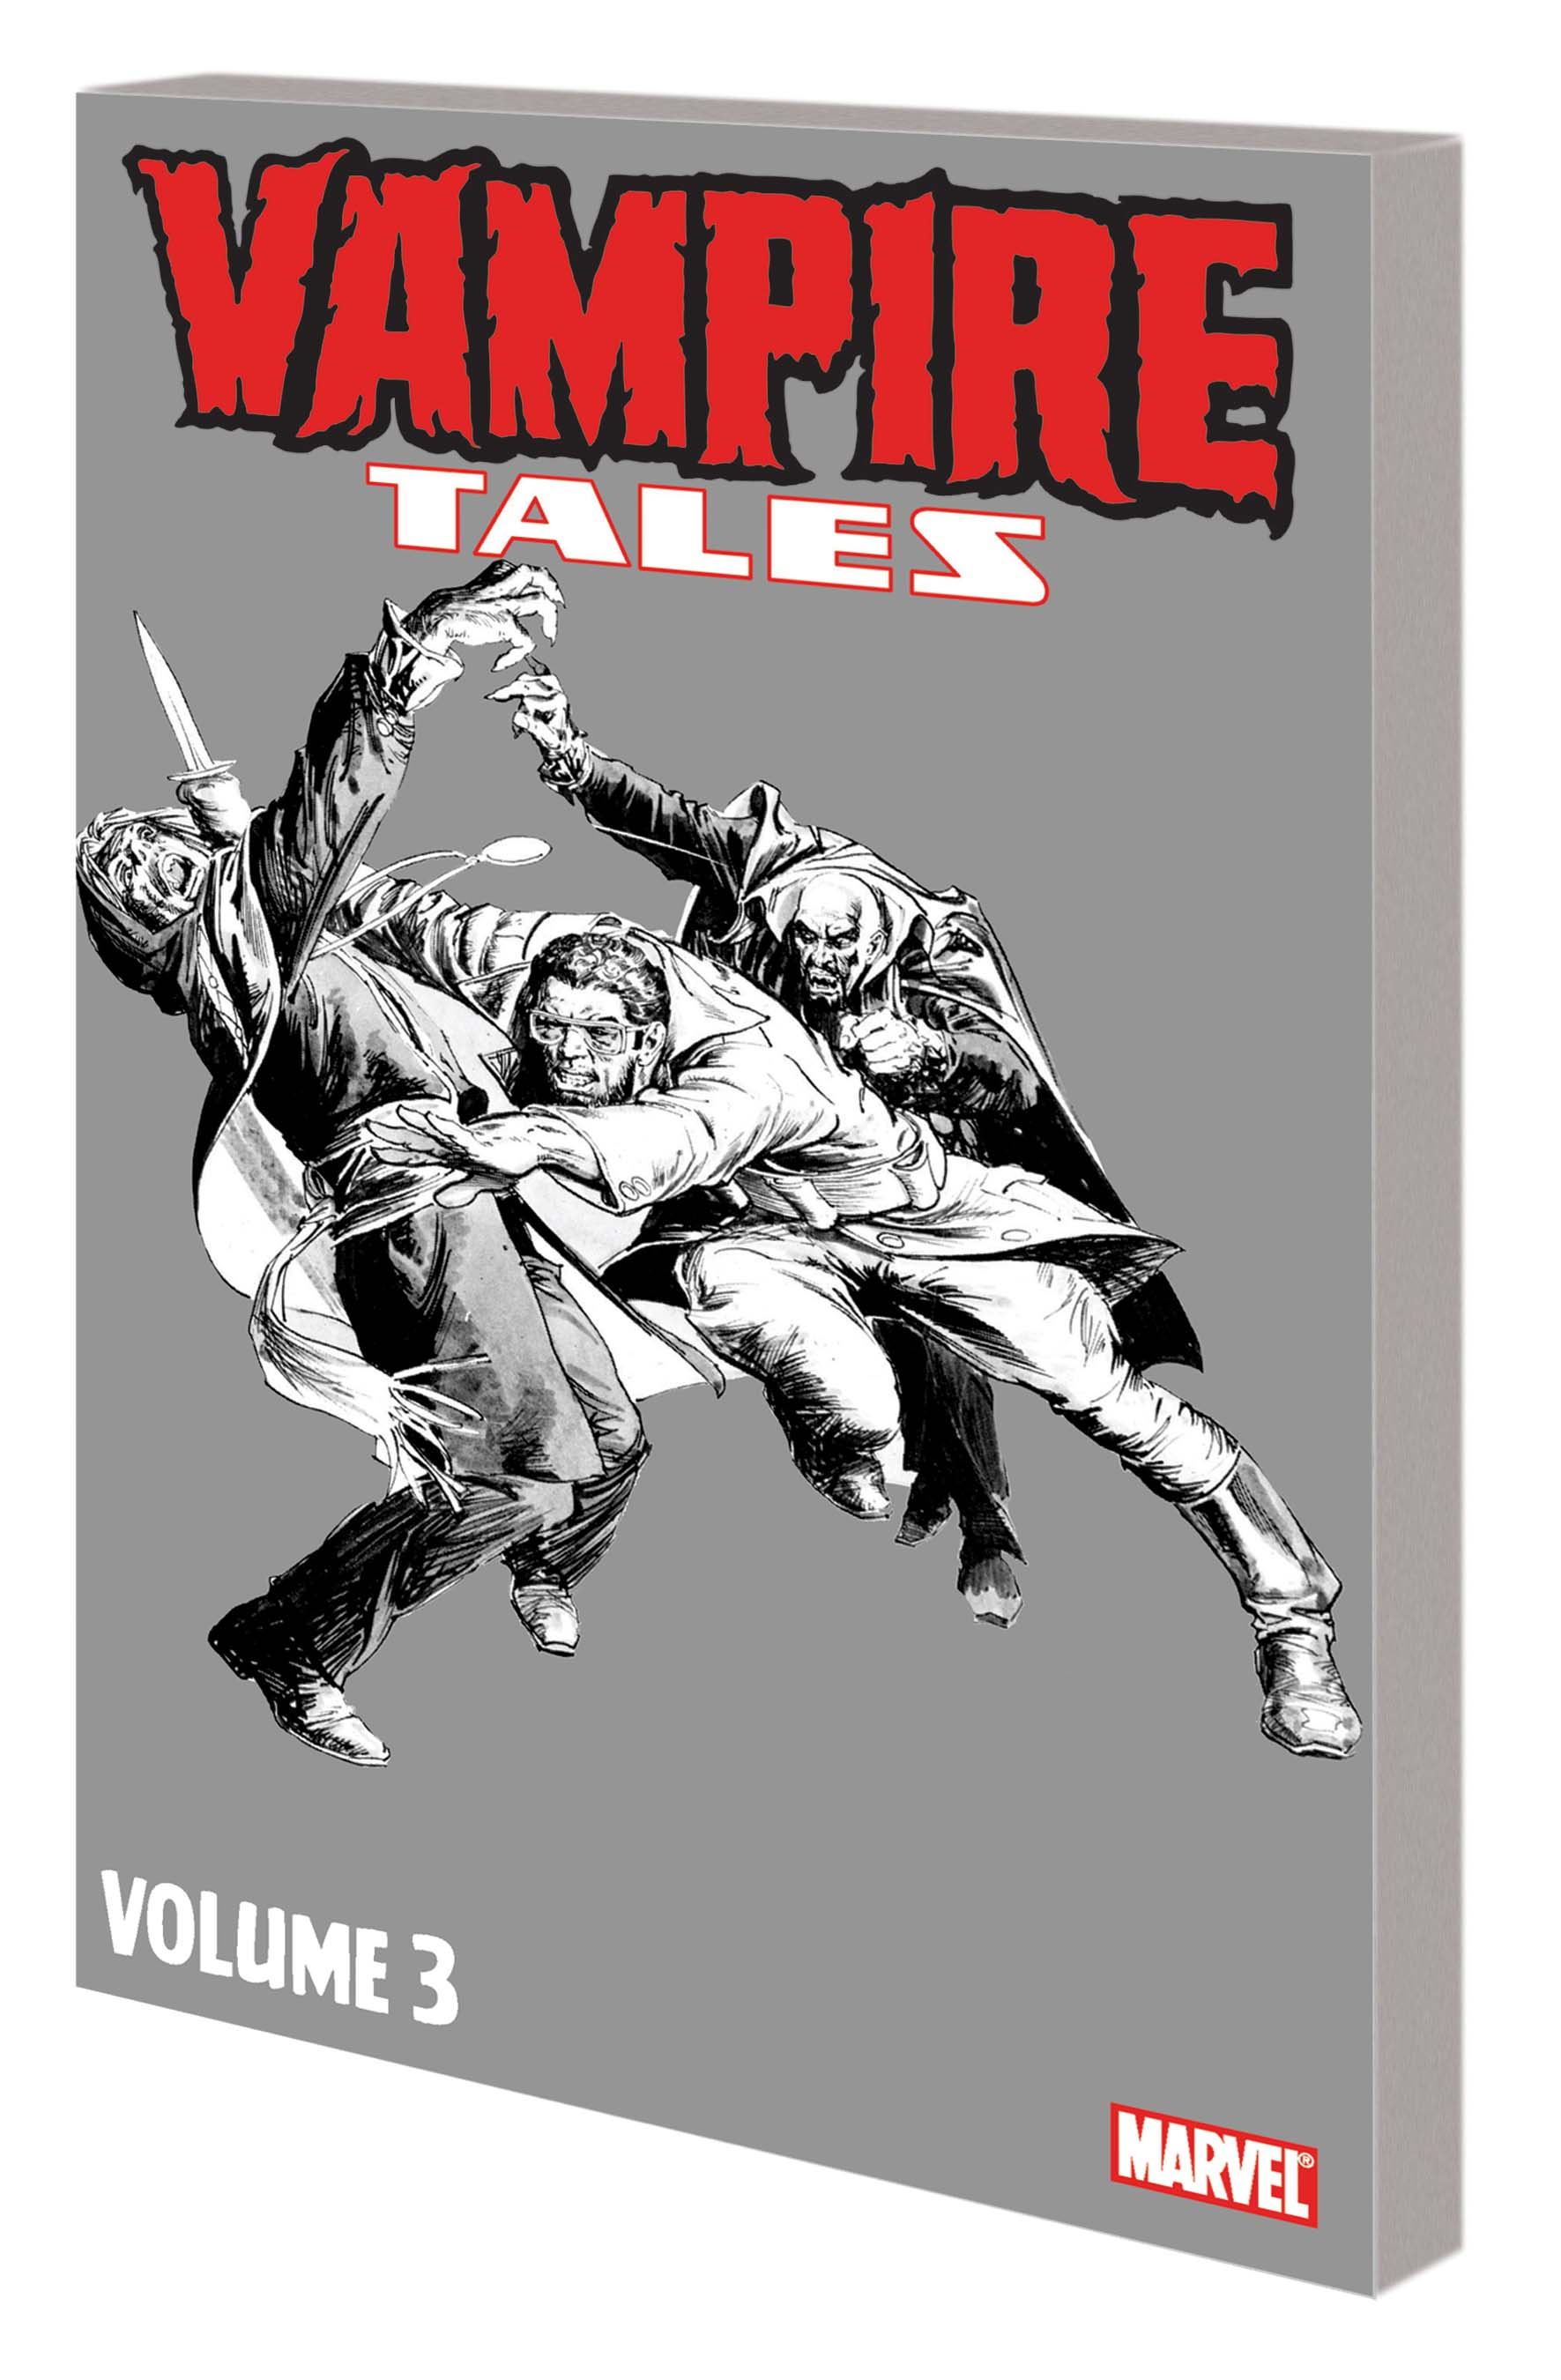 Vampire Tales Vol. 3 GN-TPB (Graphic Novel)